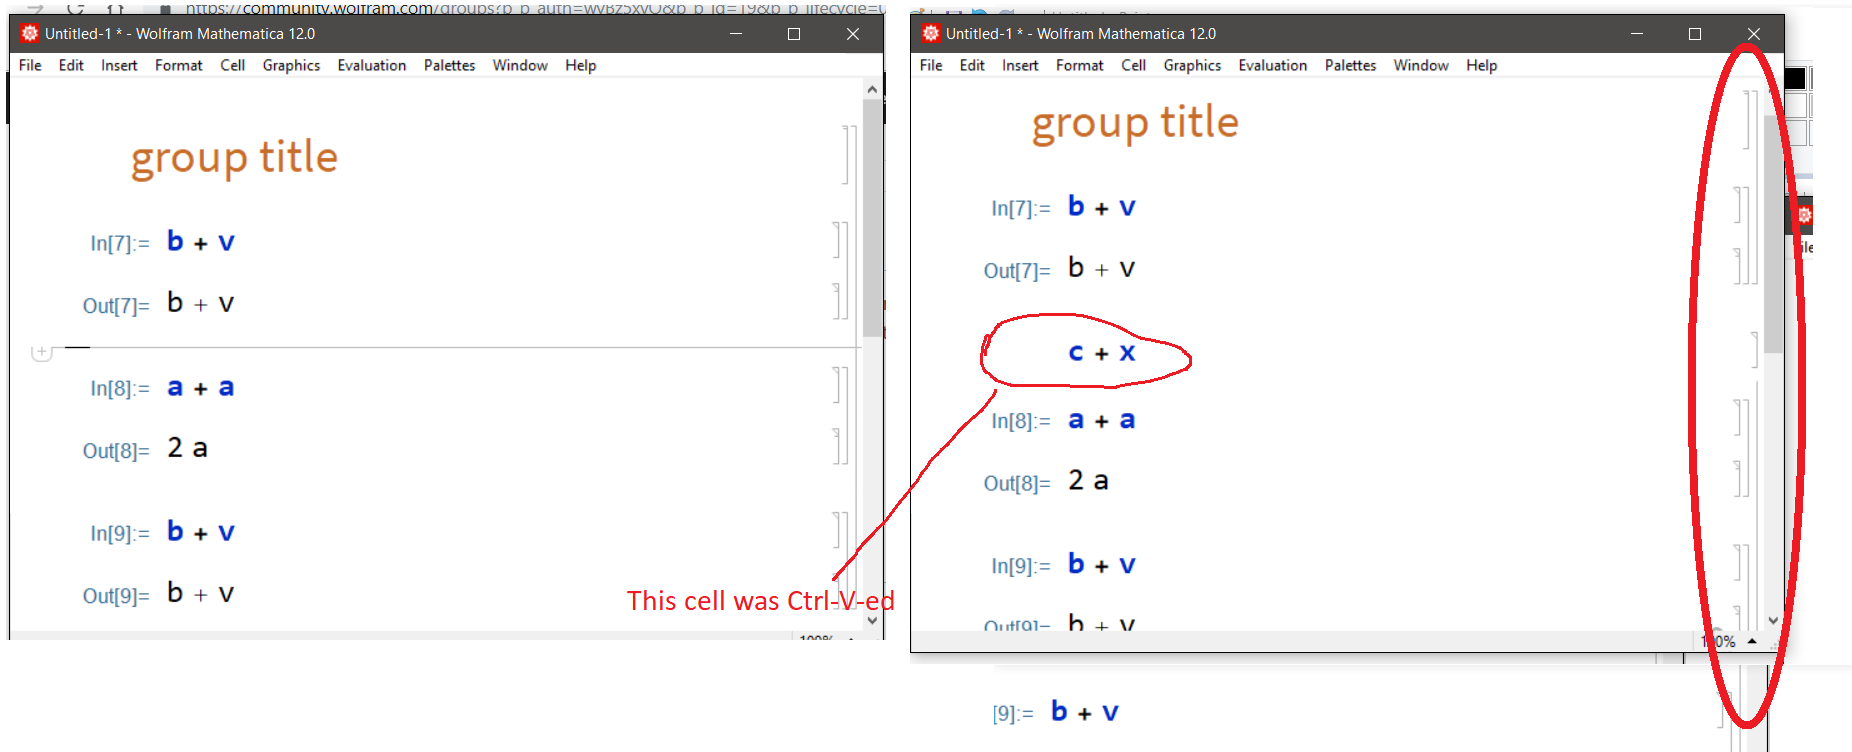 one cell added wia Ctrl-V